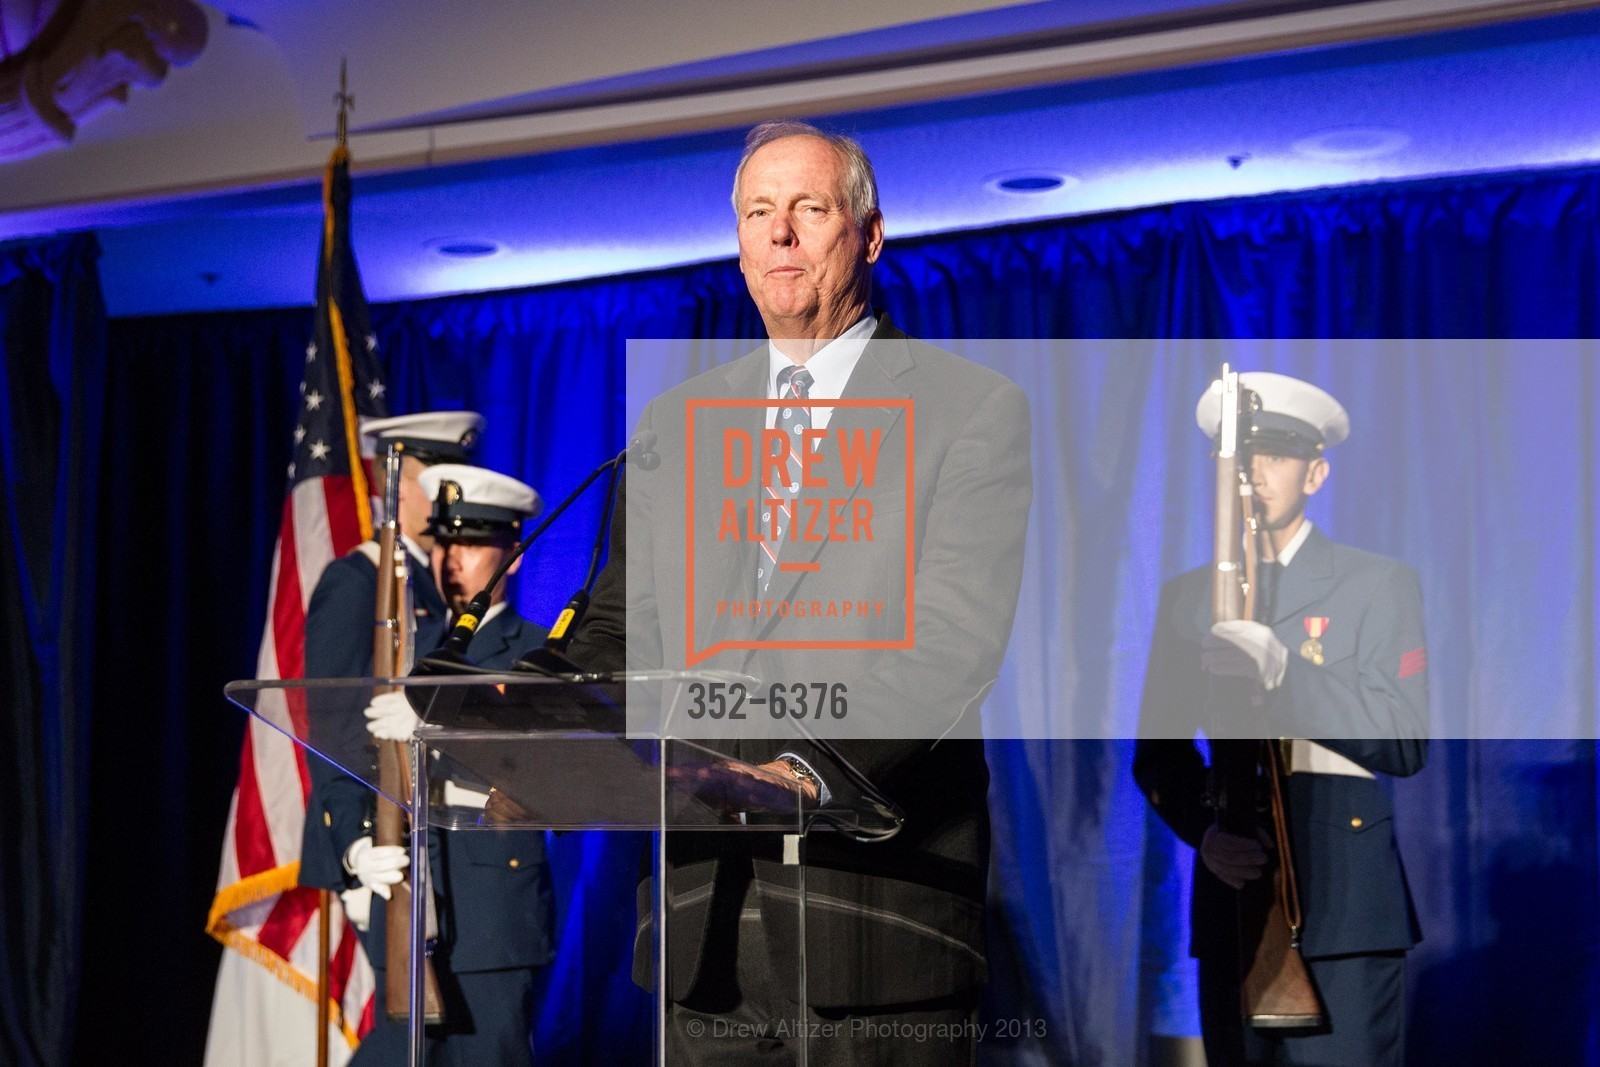 Gary Jobson, COAST GUARD FOUNDATION Presents Pacific Awards Dinner, US, April 25th, 2013,Drew Altizer, Drew Altizer Photography, full-service agency, private events, San Francisco photographer, photographer california